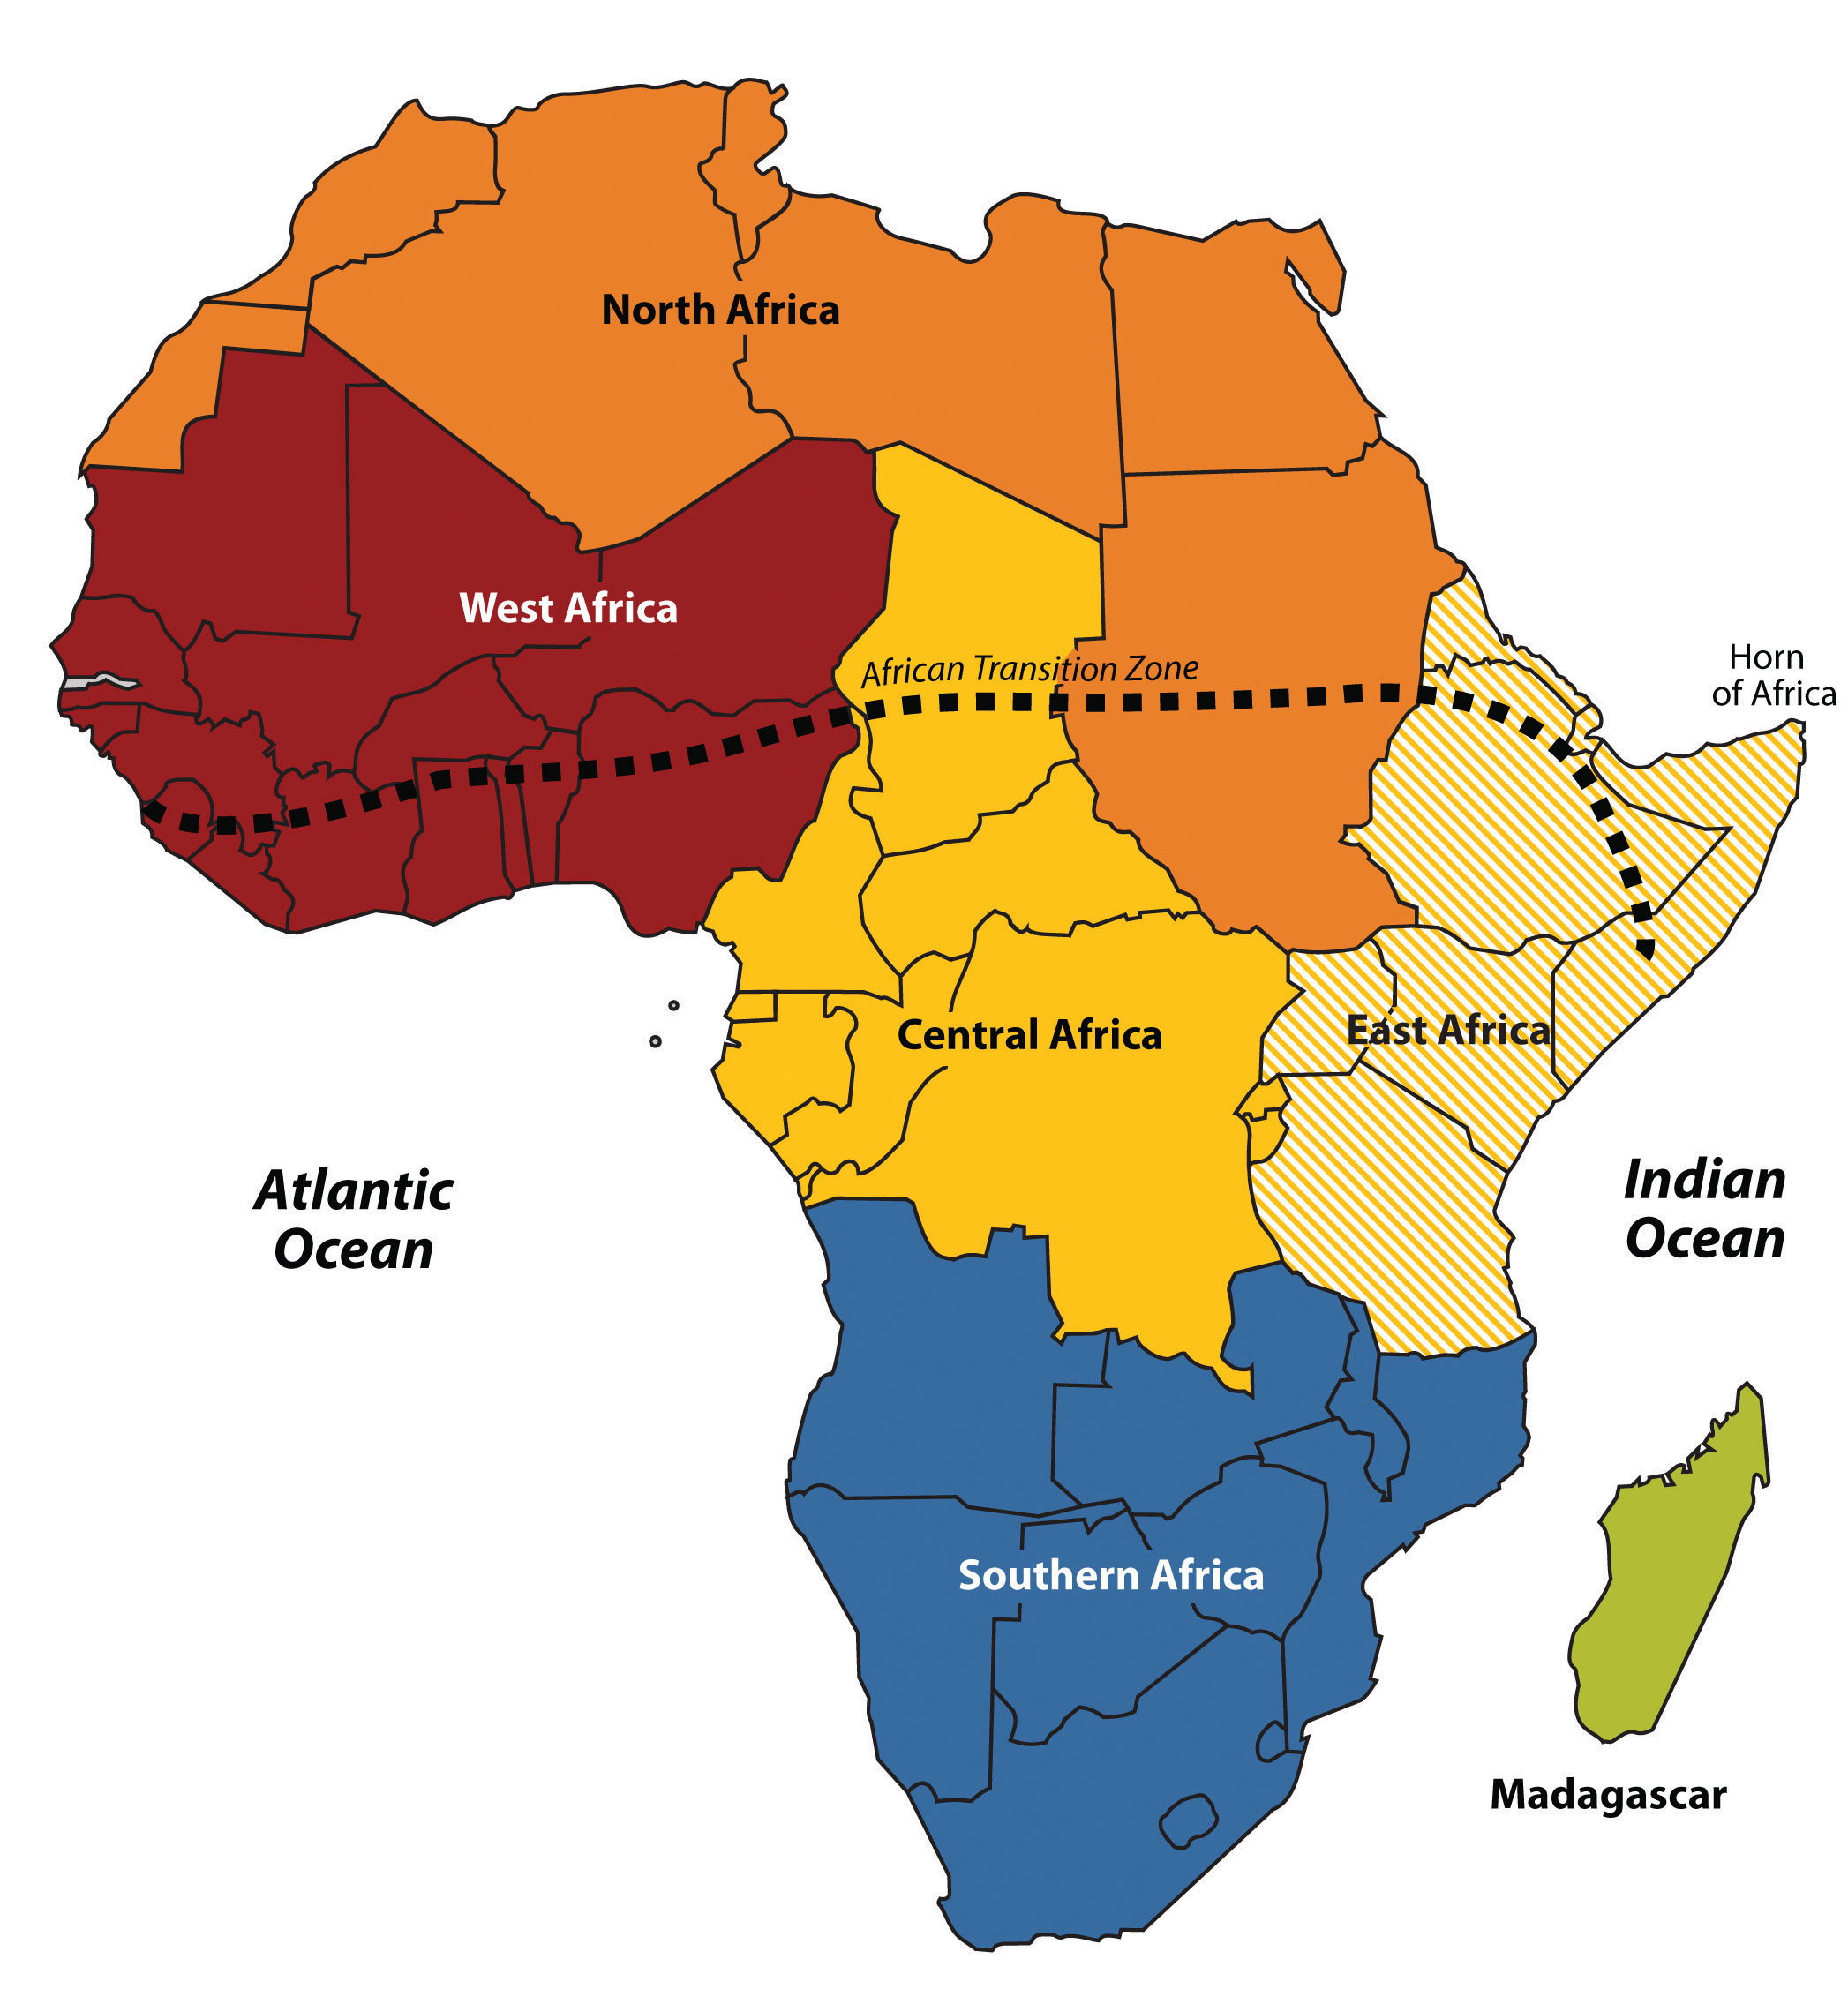 A Geographical ysis of Sub-Saharan Africa on geography of africa, legal map of africa, transportation map of africa, topological map of africa, full map of africa, detailed map of africa, territorial map of africa, blank map of africa, ethnographic map of africa, geographic features of africa, climate map of africa, geographical egypt, labeled map of africa, drakensburg mountains on map of africa, physiological map of africa, mountain ranges in africa, landform map of africa, show me the map of africa, interactive physical map of africa, ecological map of africa,